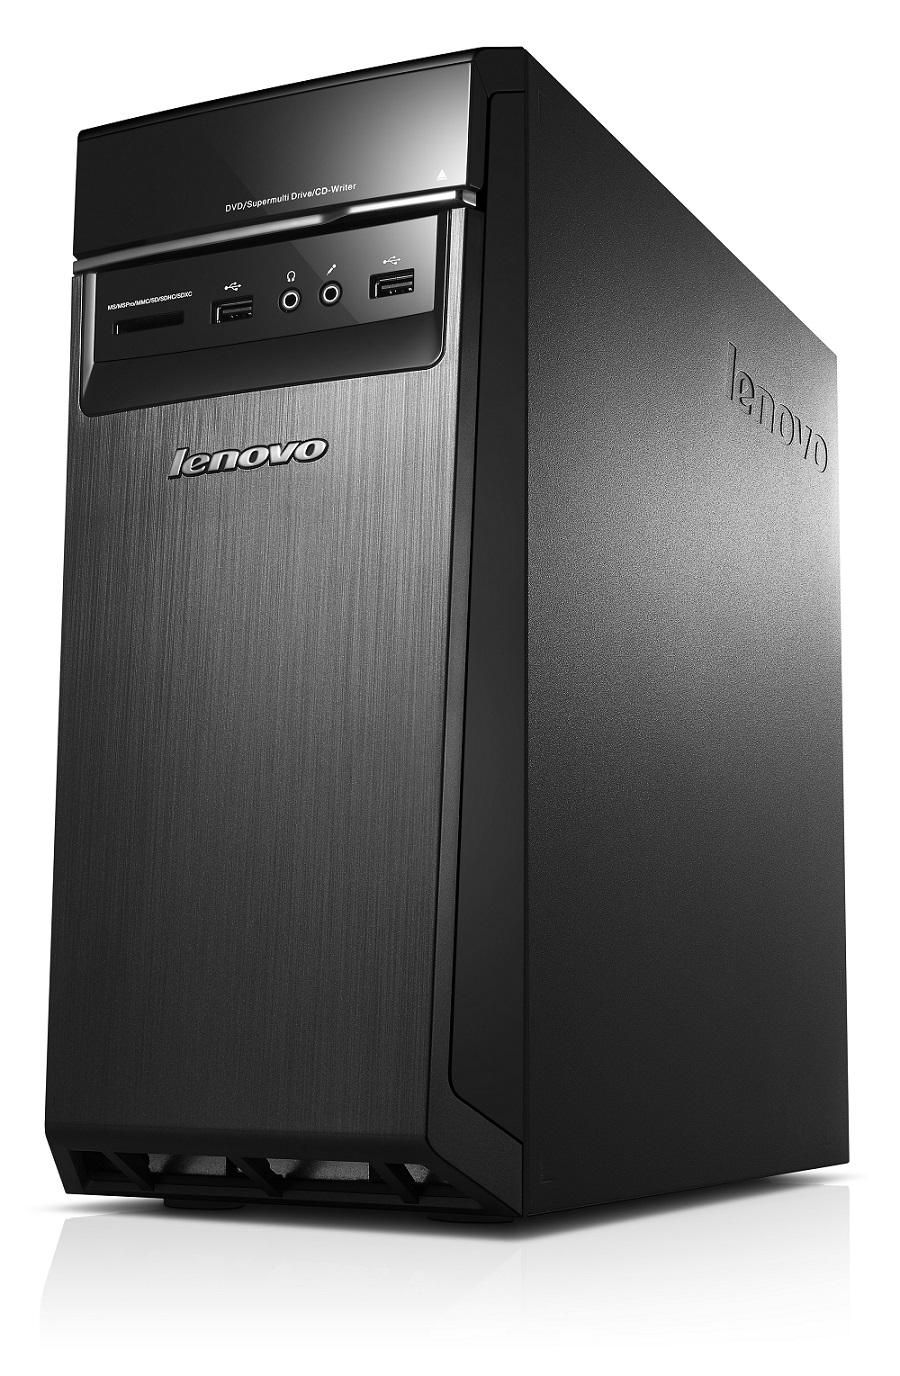 Lenovo DT IdeaCentre H50-55 A10-7800 3.90 GHz/8GB/SSD 120GB+HDD 1TB/GeForce 2GB/DVD-RW/tower 20l/WIN10 90BF004BCK